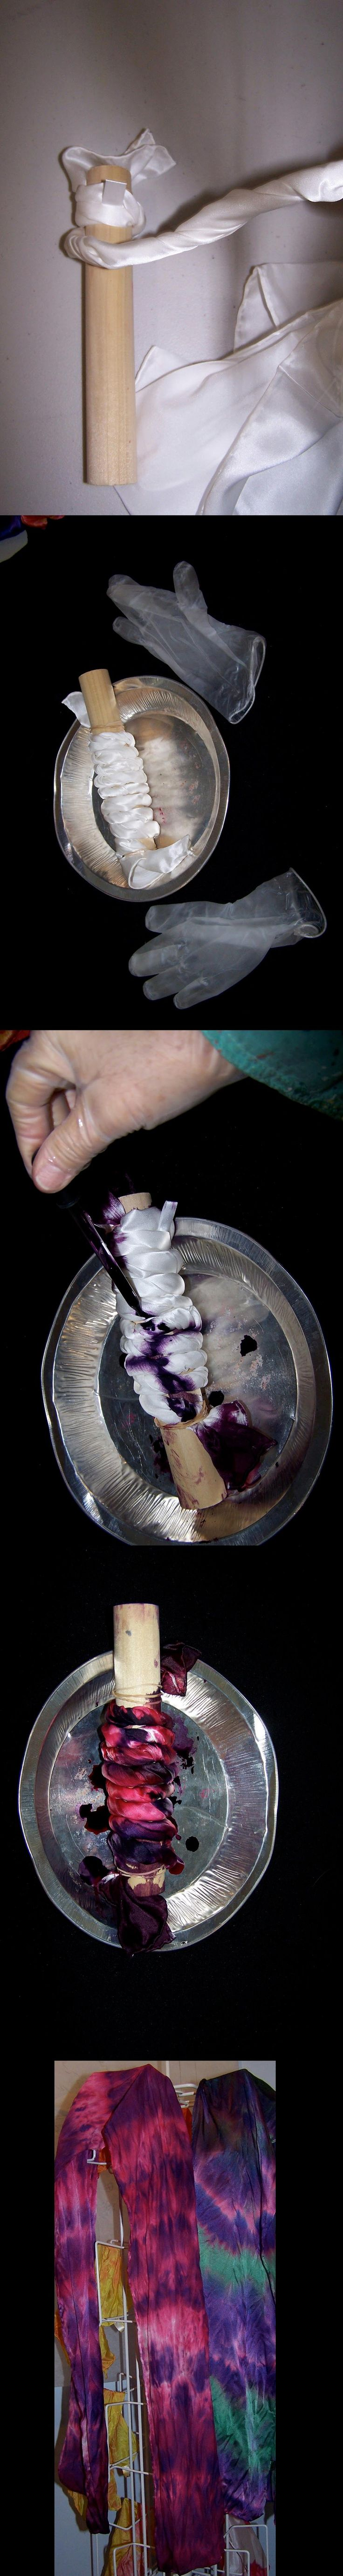 Shibori Technique